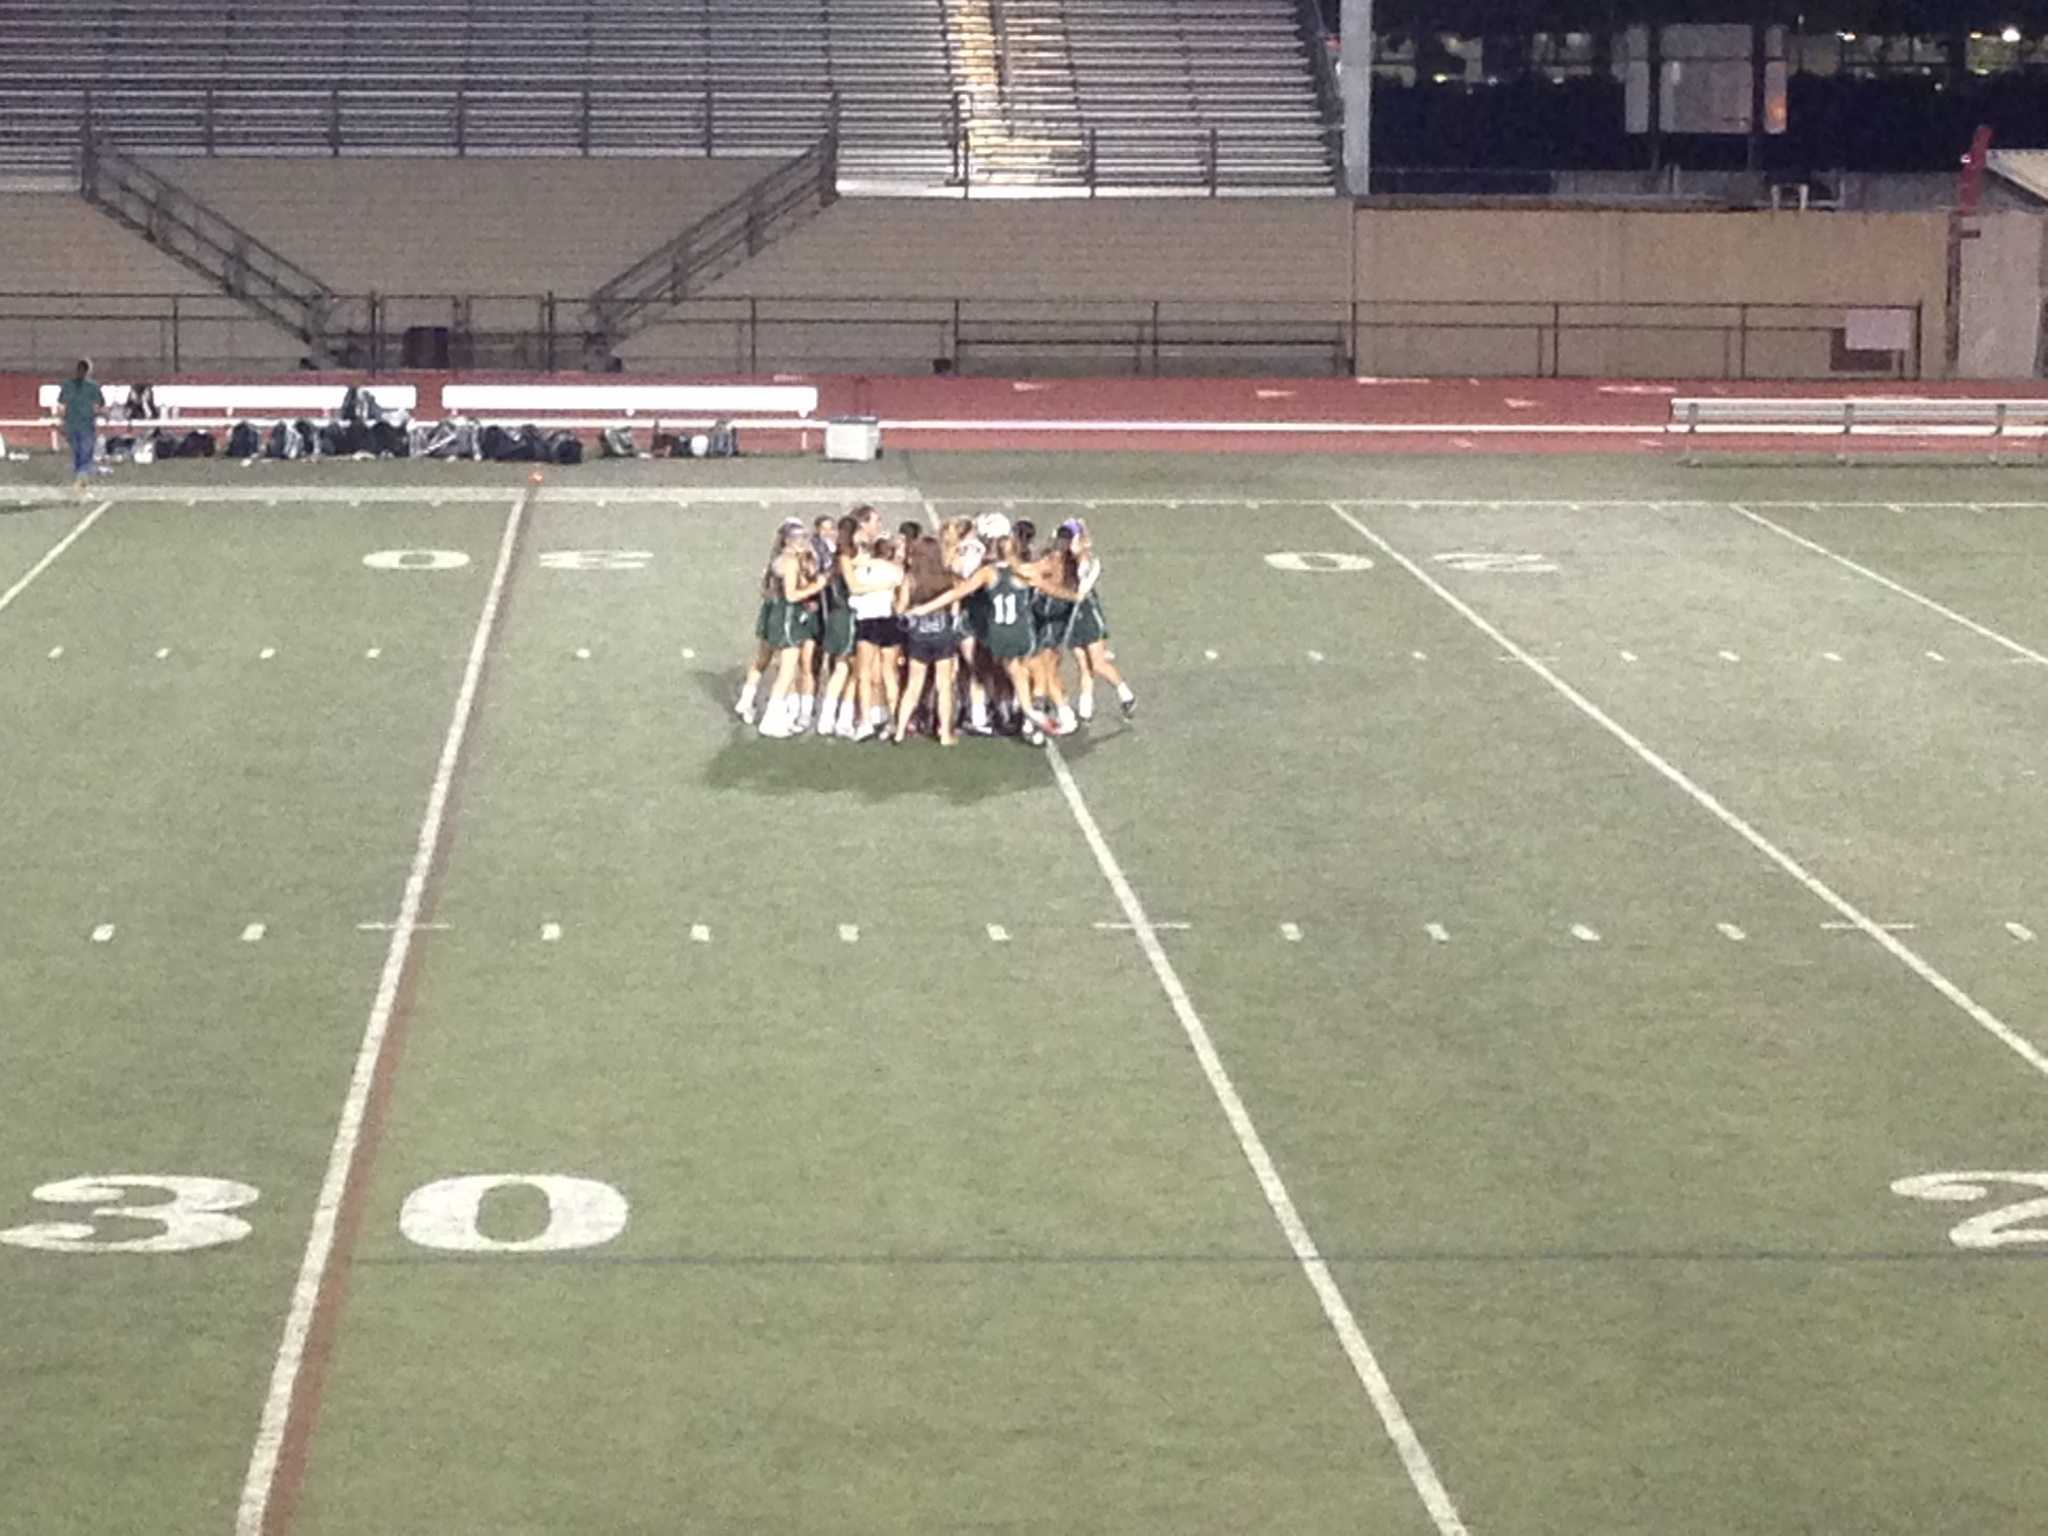 The Palo Alto girls' lacrosse team huddles after their win against St. Francis. Photo by Molly Fogarty.